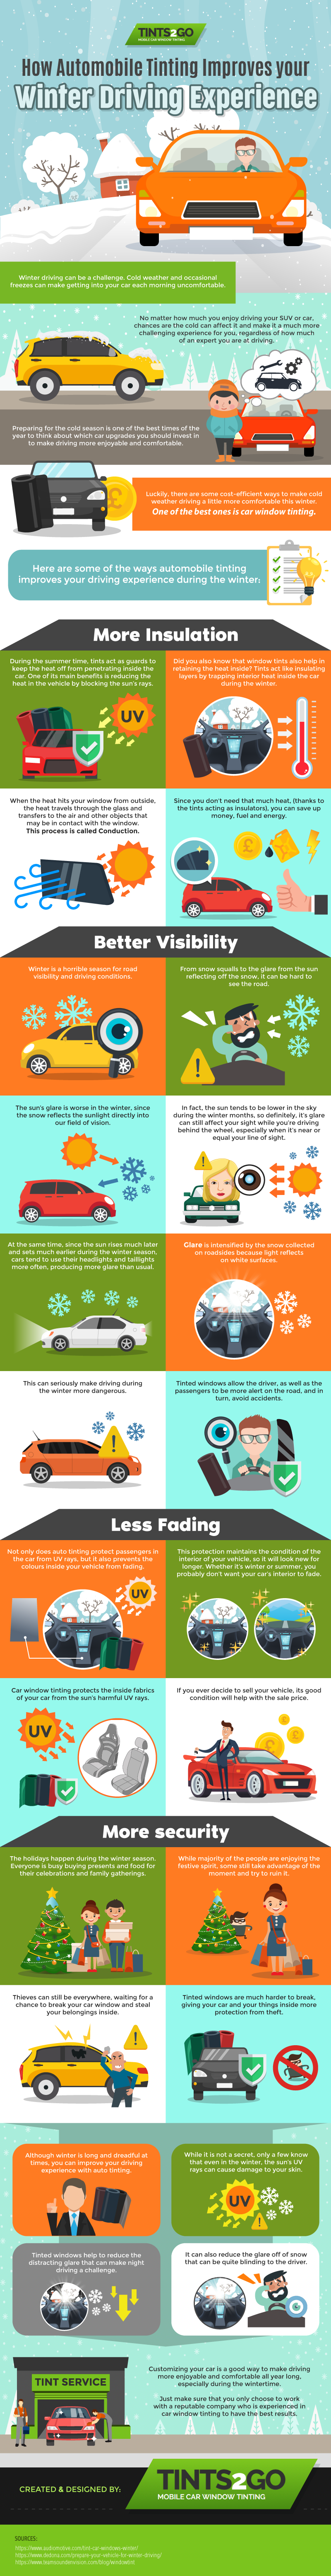 How Automobile Tinting Improves your Winter Driving Experience